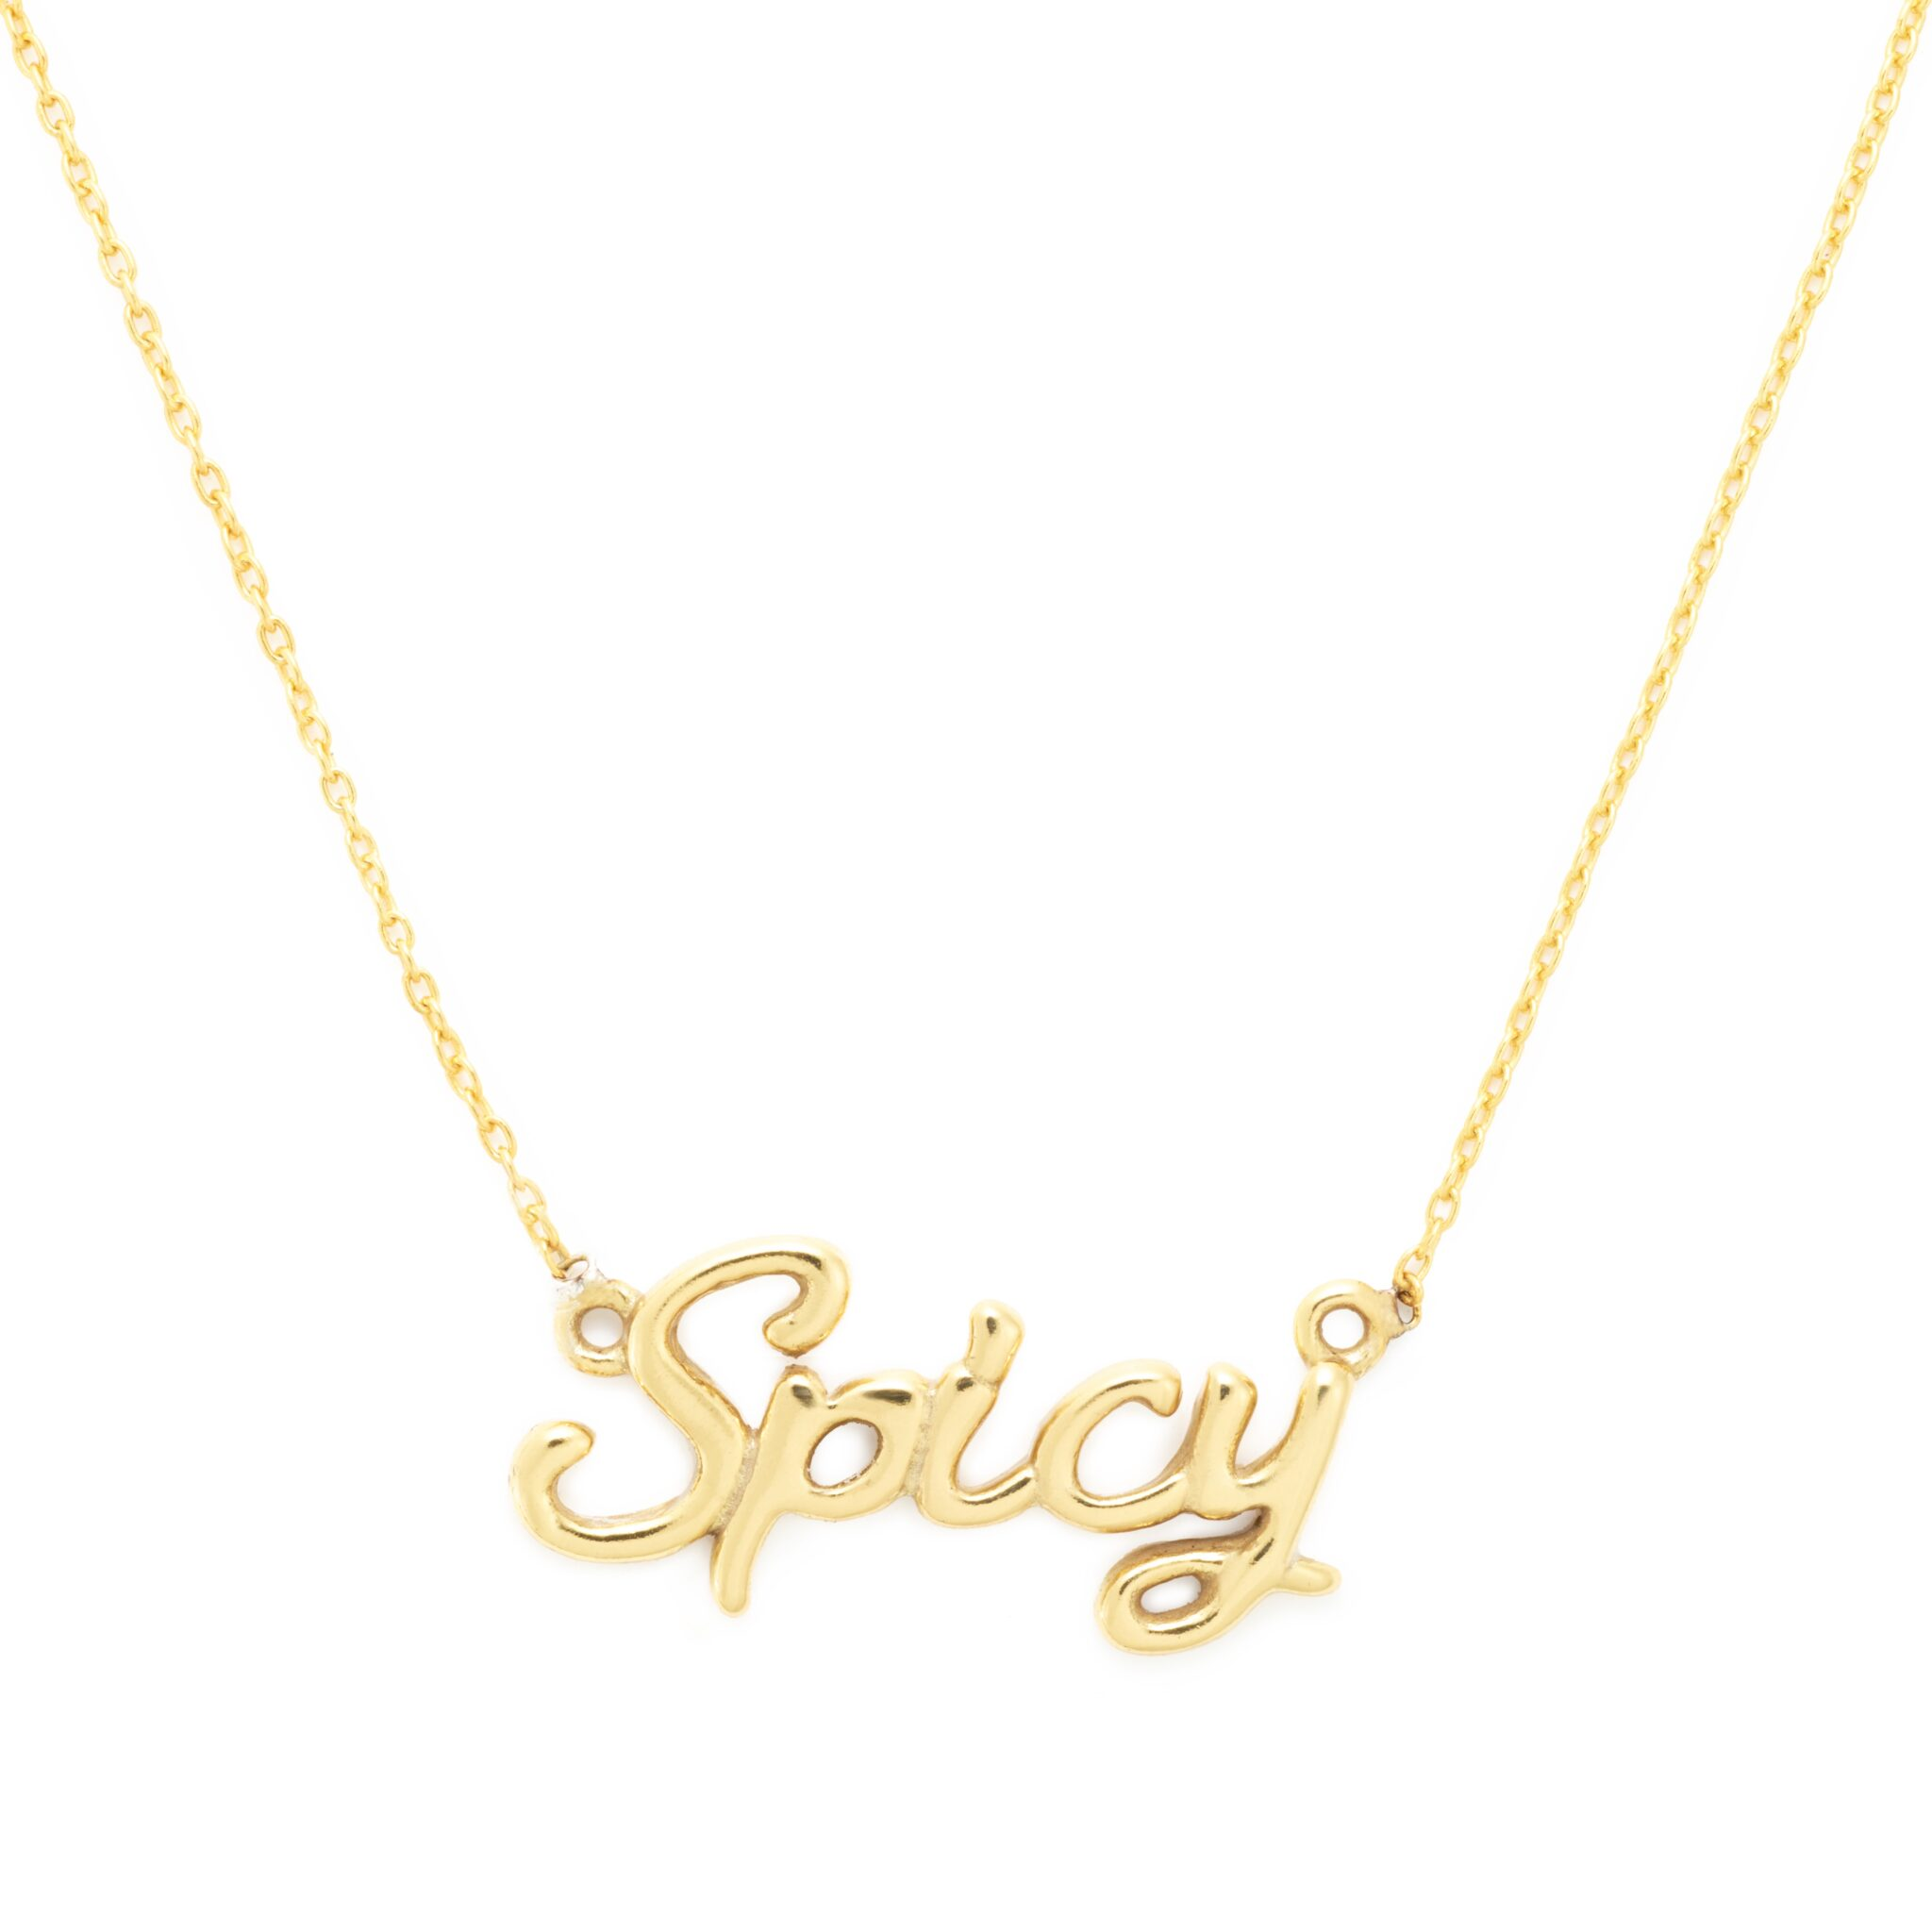 Yellow Gold Plated Spicy Necklace